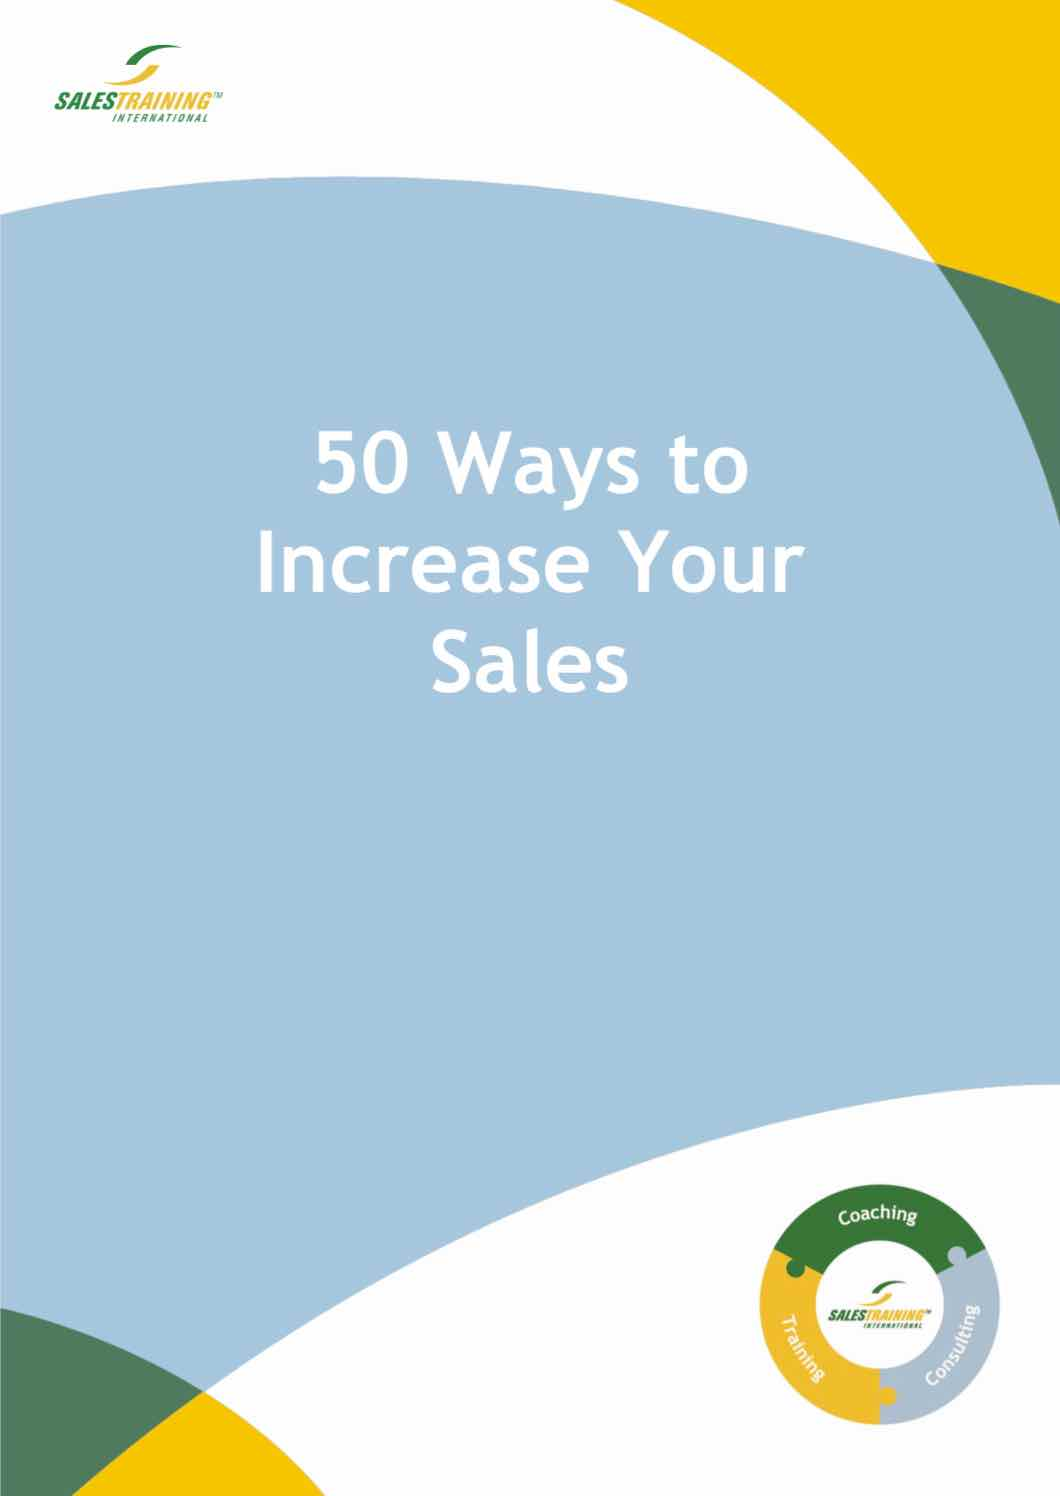 50 Ways to Increase Your Sales